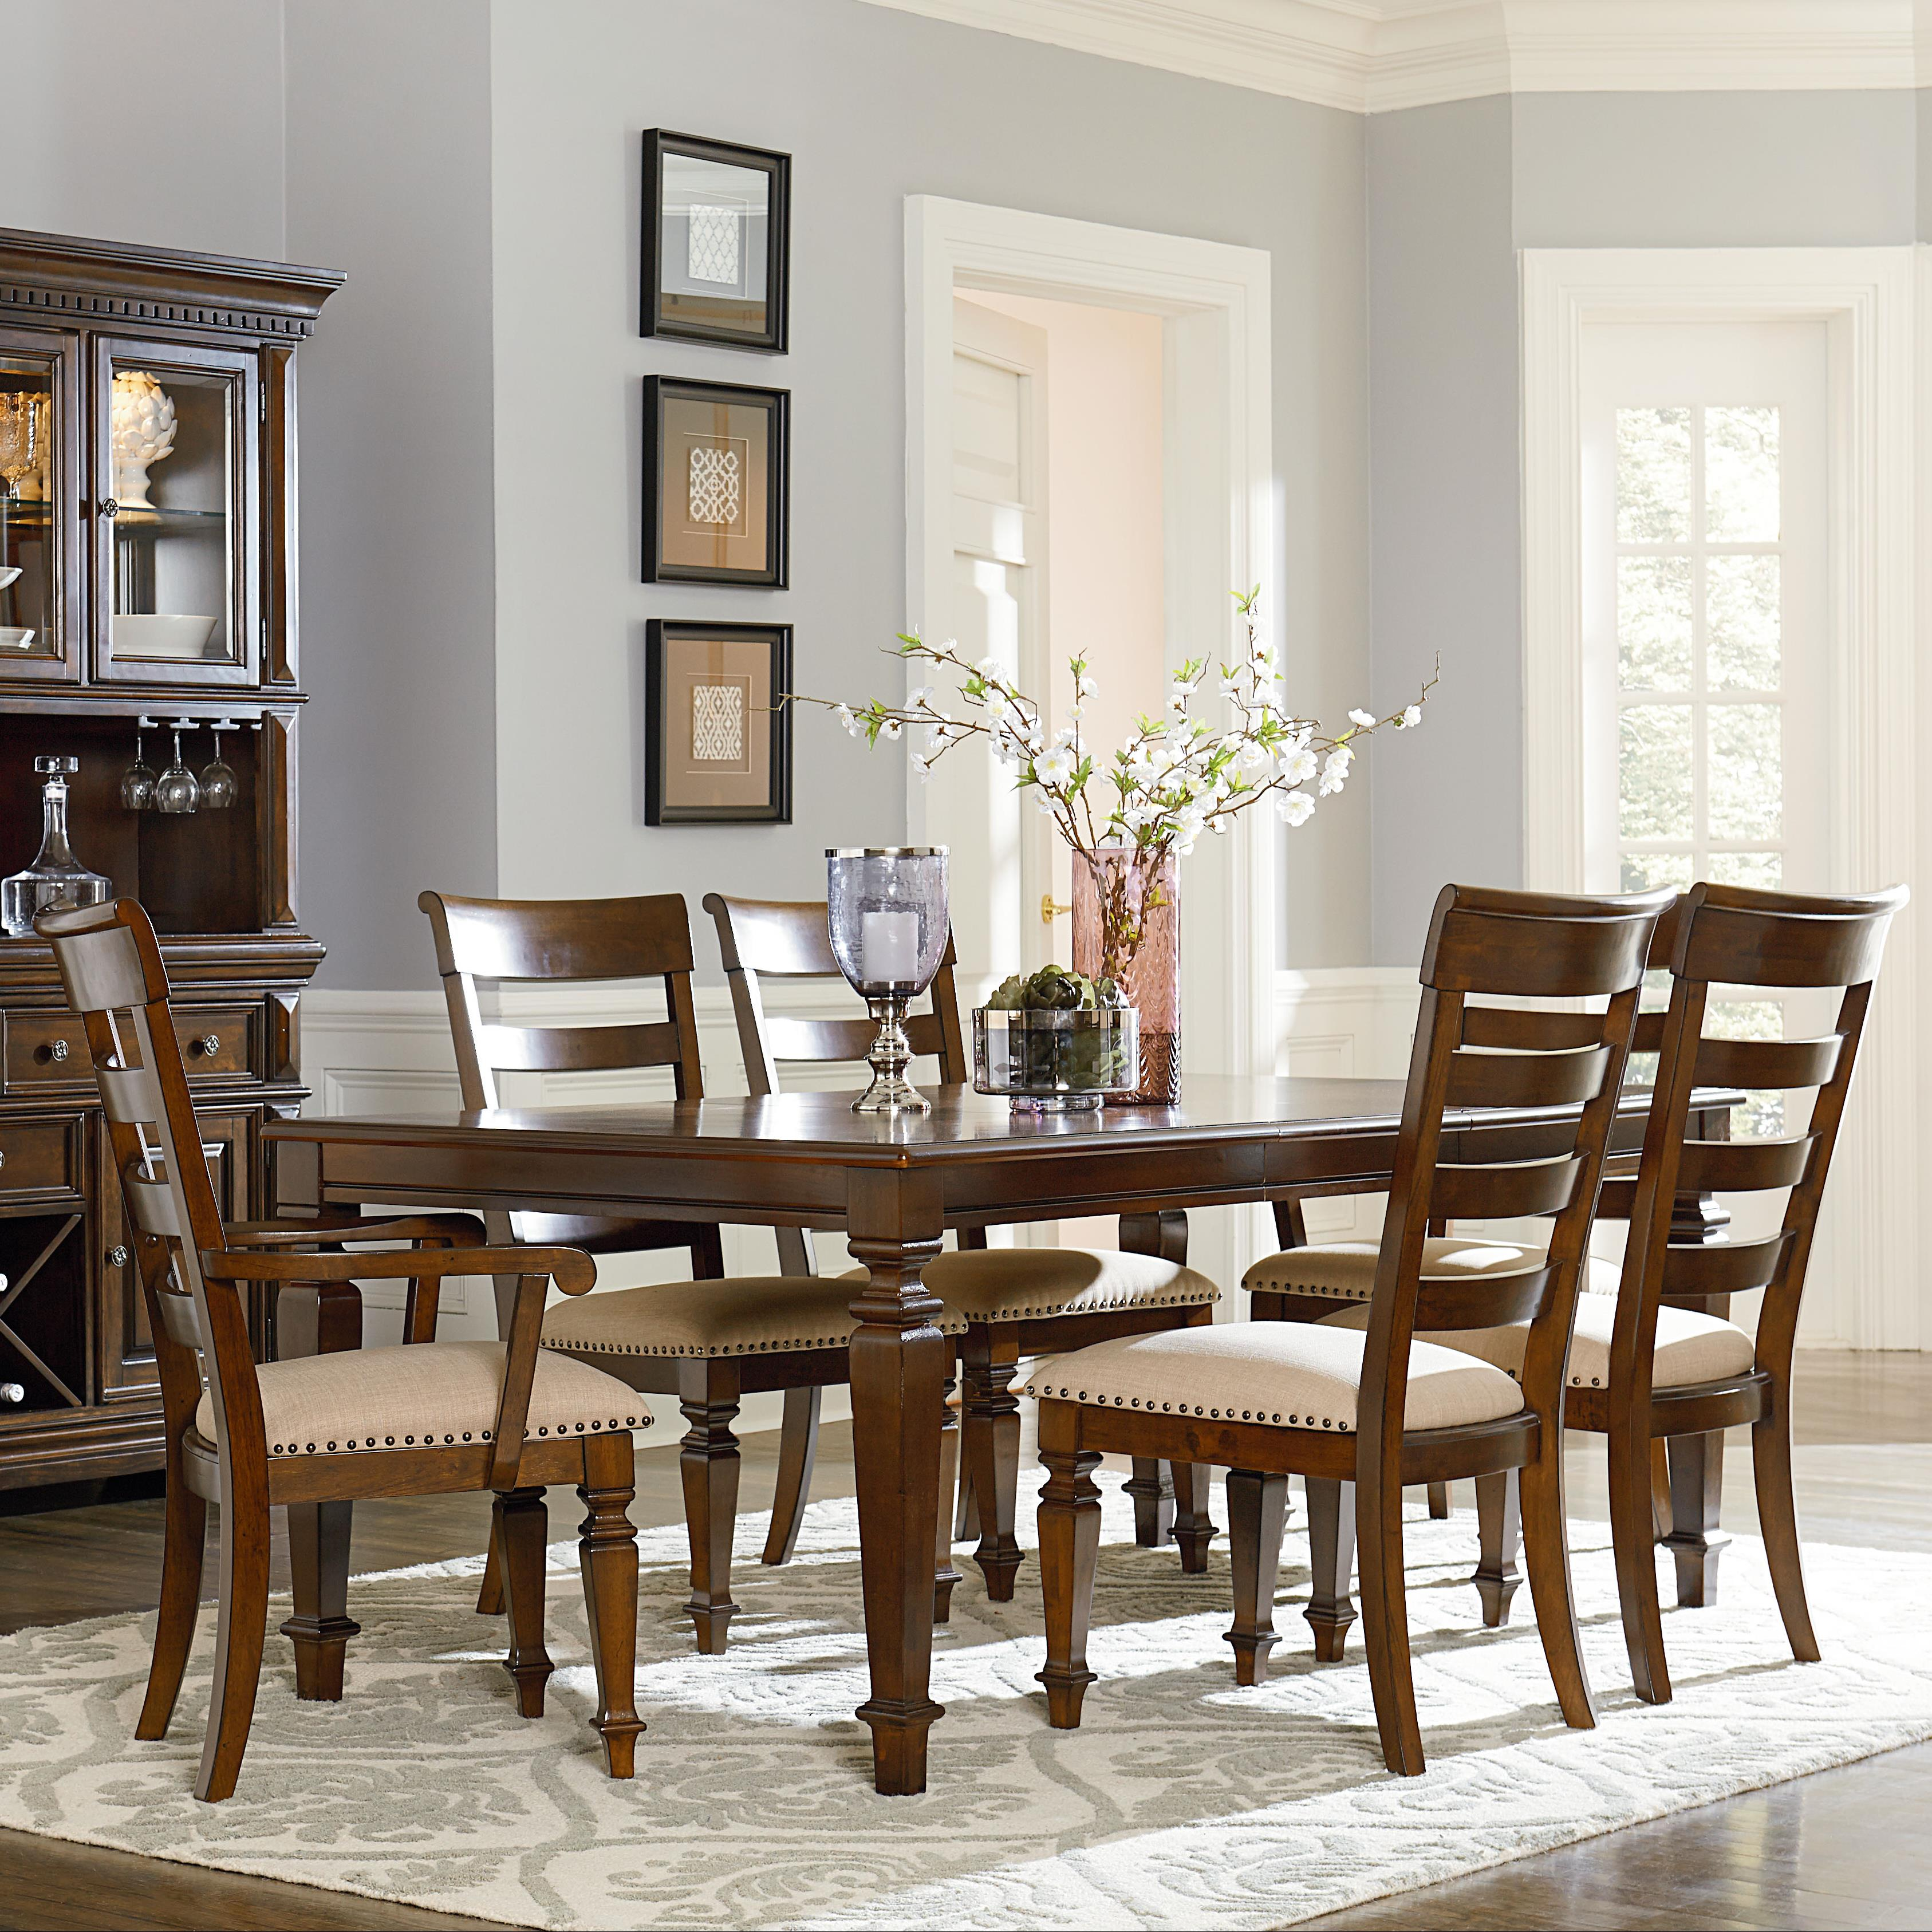 Standard Furniture Charleston 7 Piece Leg Table and Chair Set - Item Number: 16726+2x25+4x24